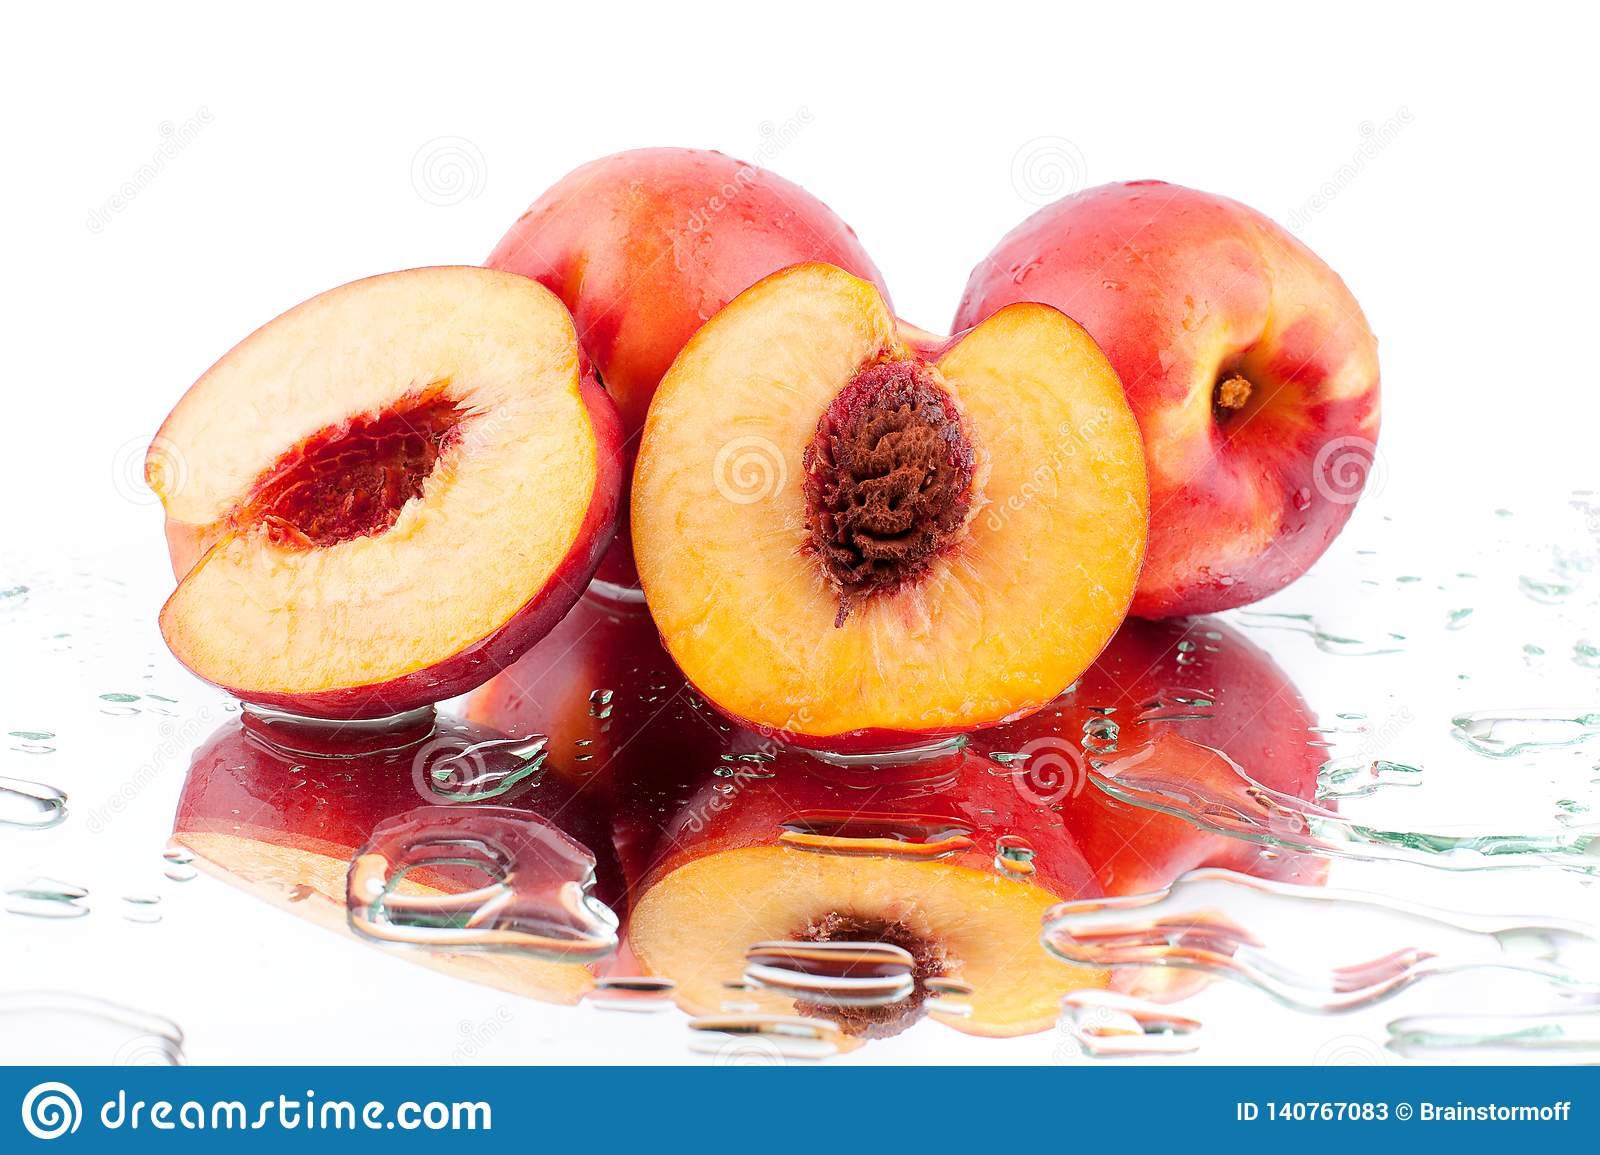 Peach whole and cutted into two halves in water drops on white background isolated close up